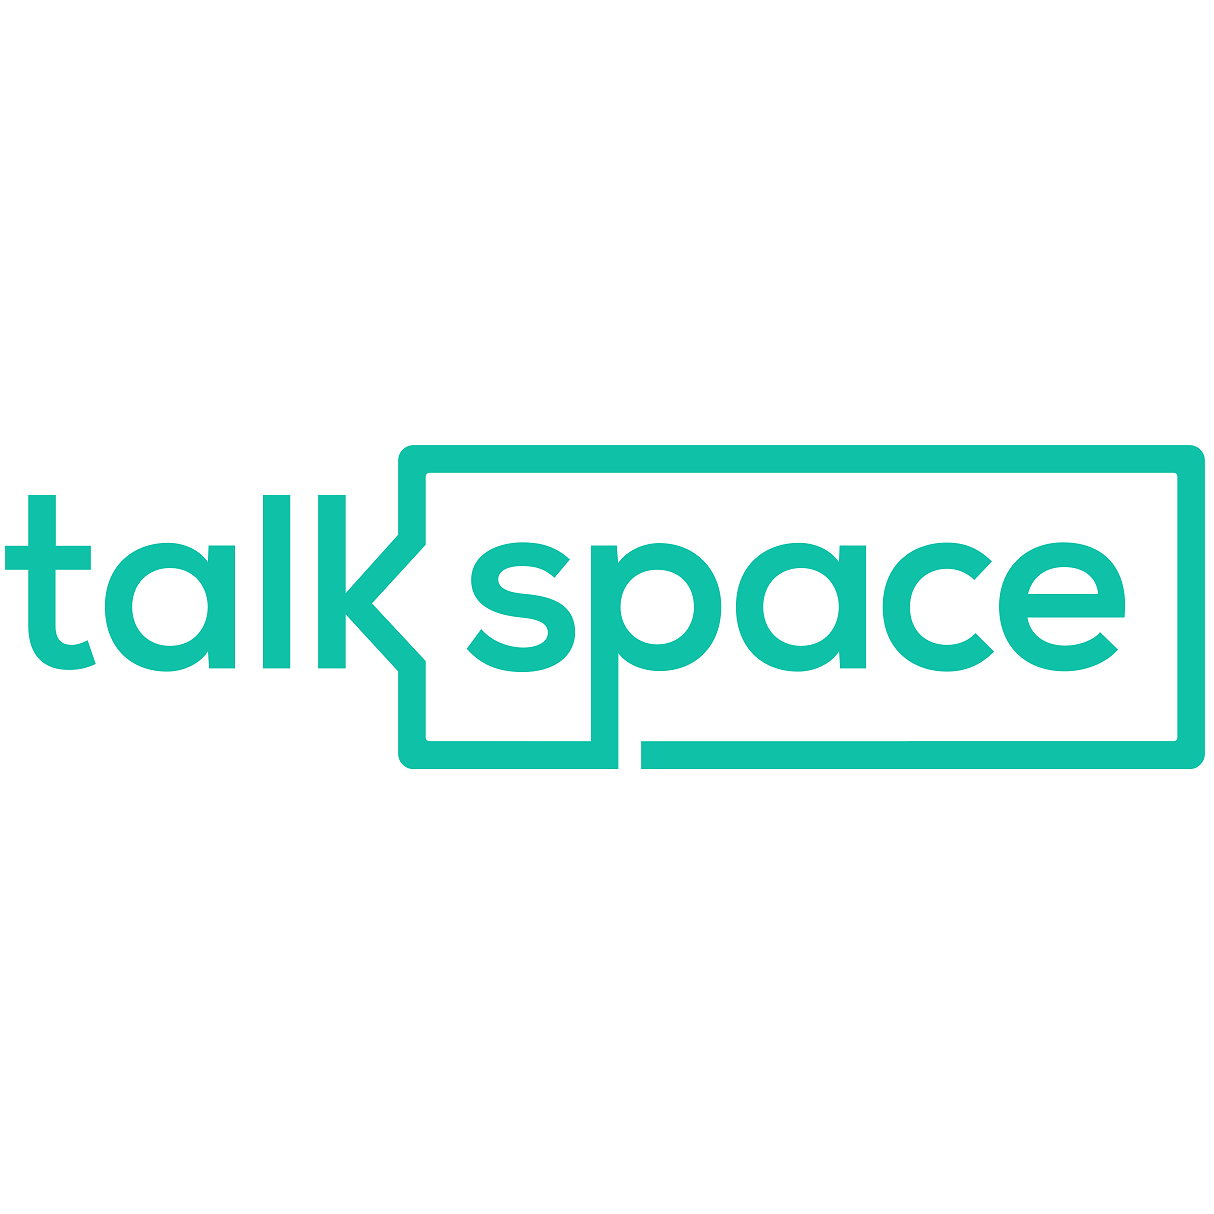 Talkspace